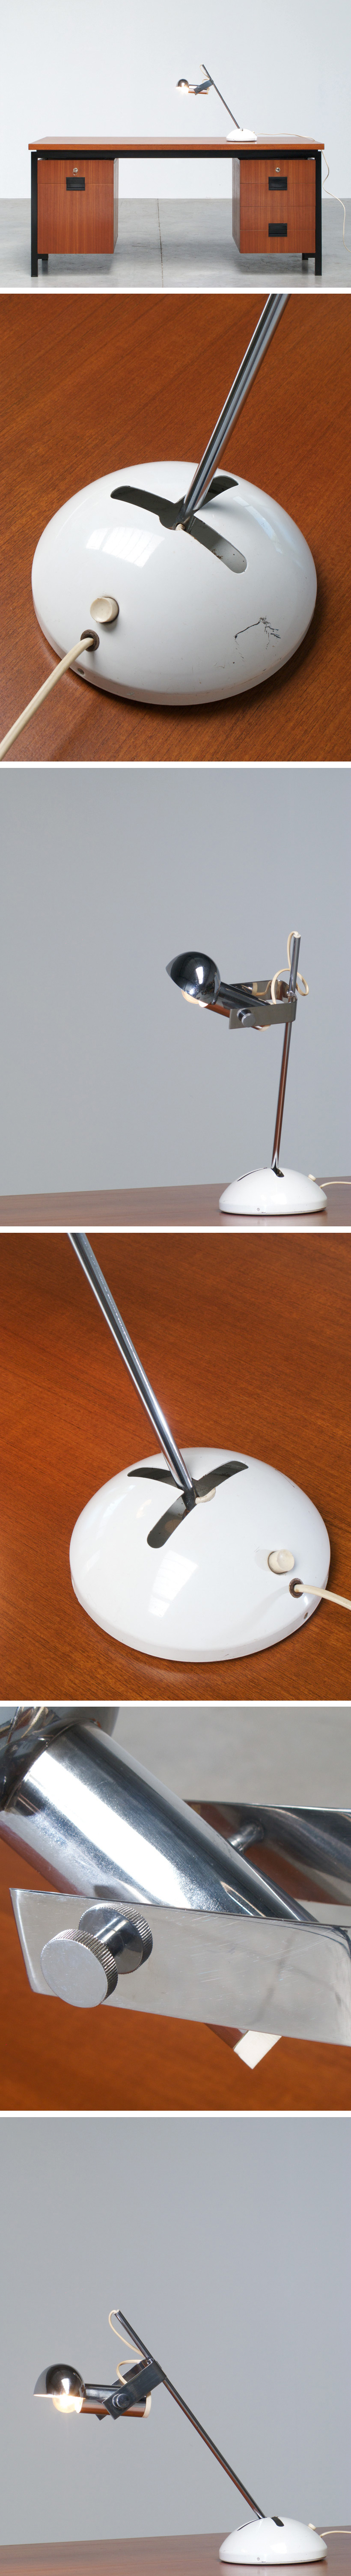 Adjustable Italian table or desk light for Luci Large